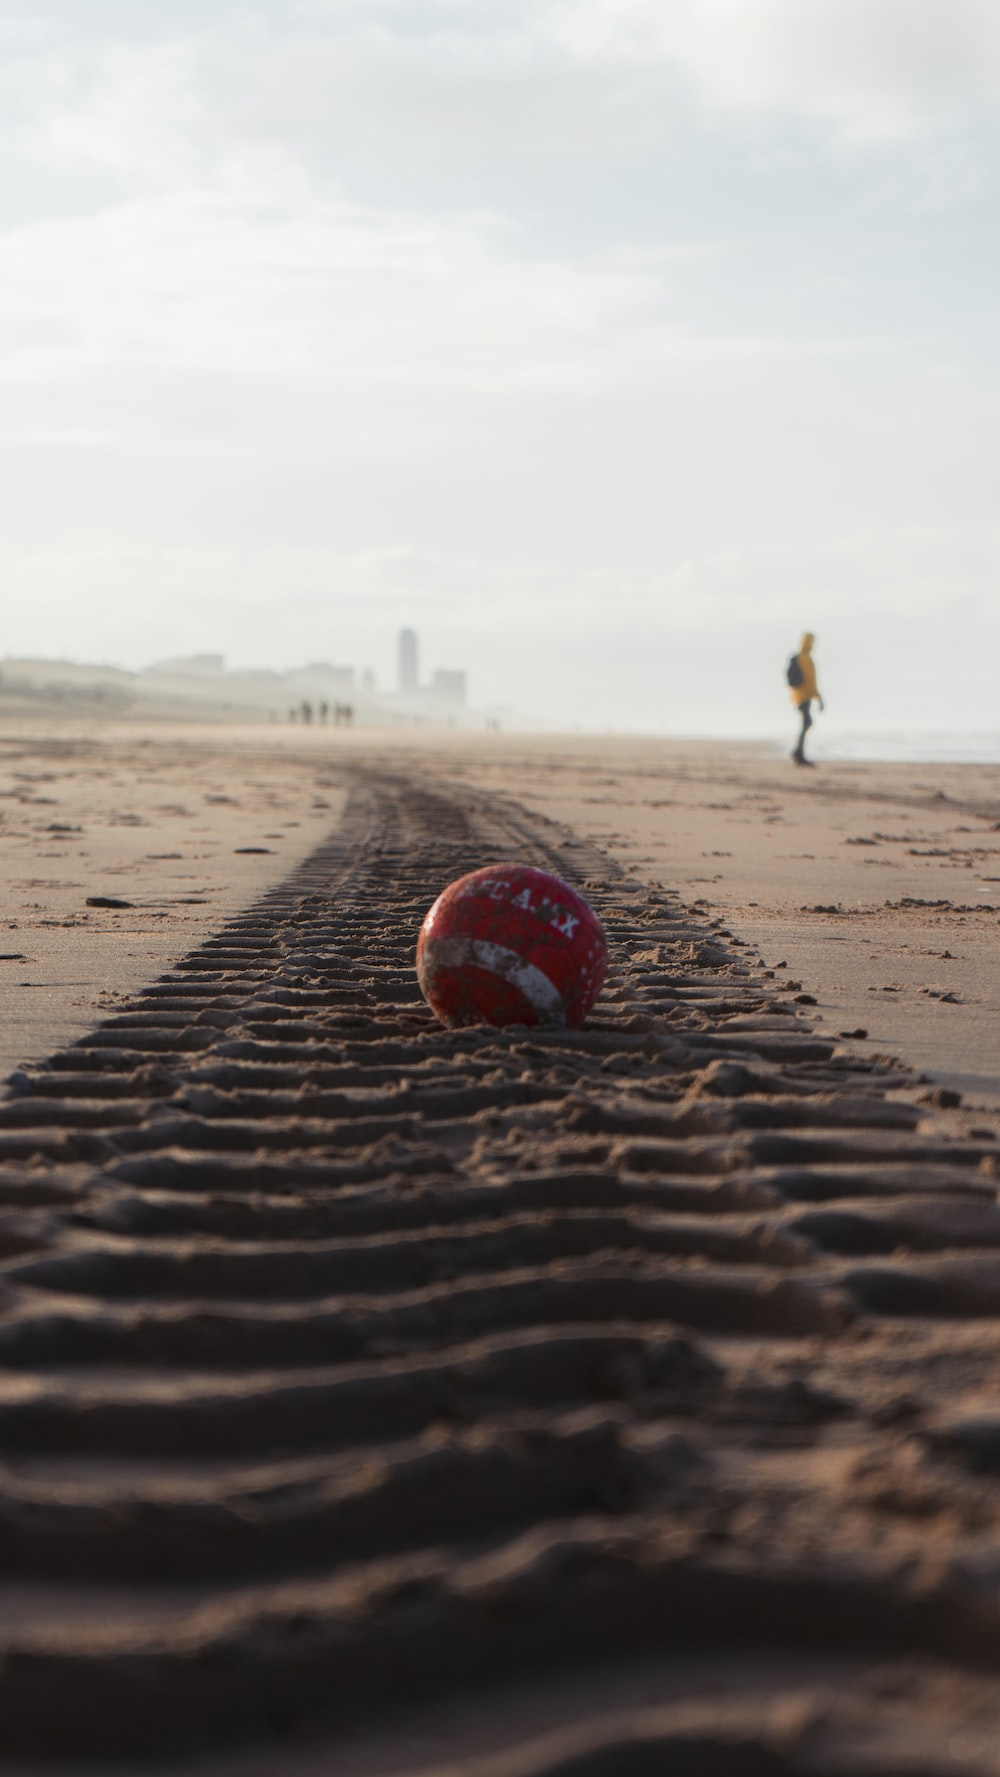 red and white soccer ball on brown sand during daytime